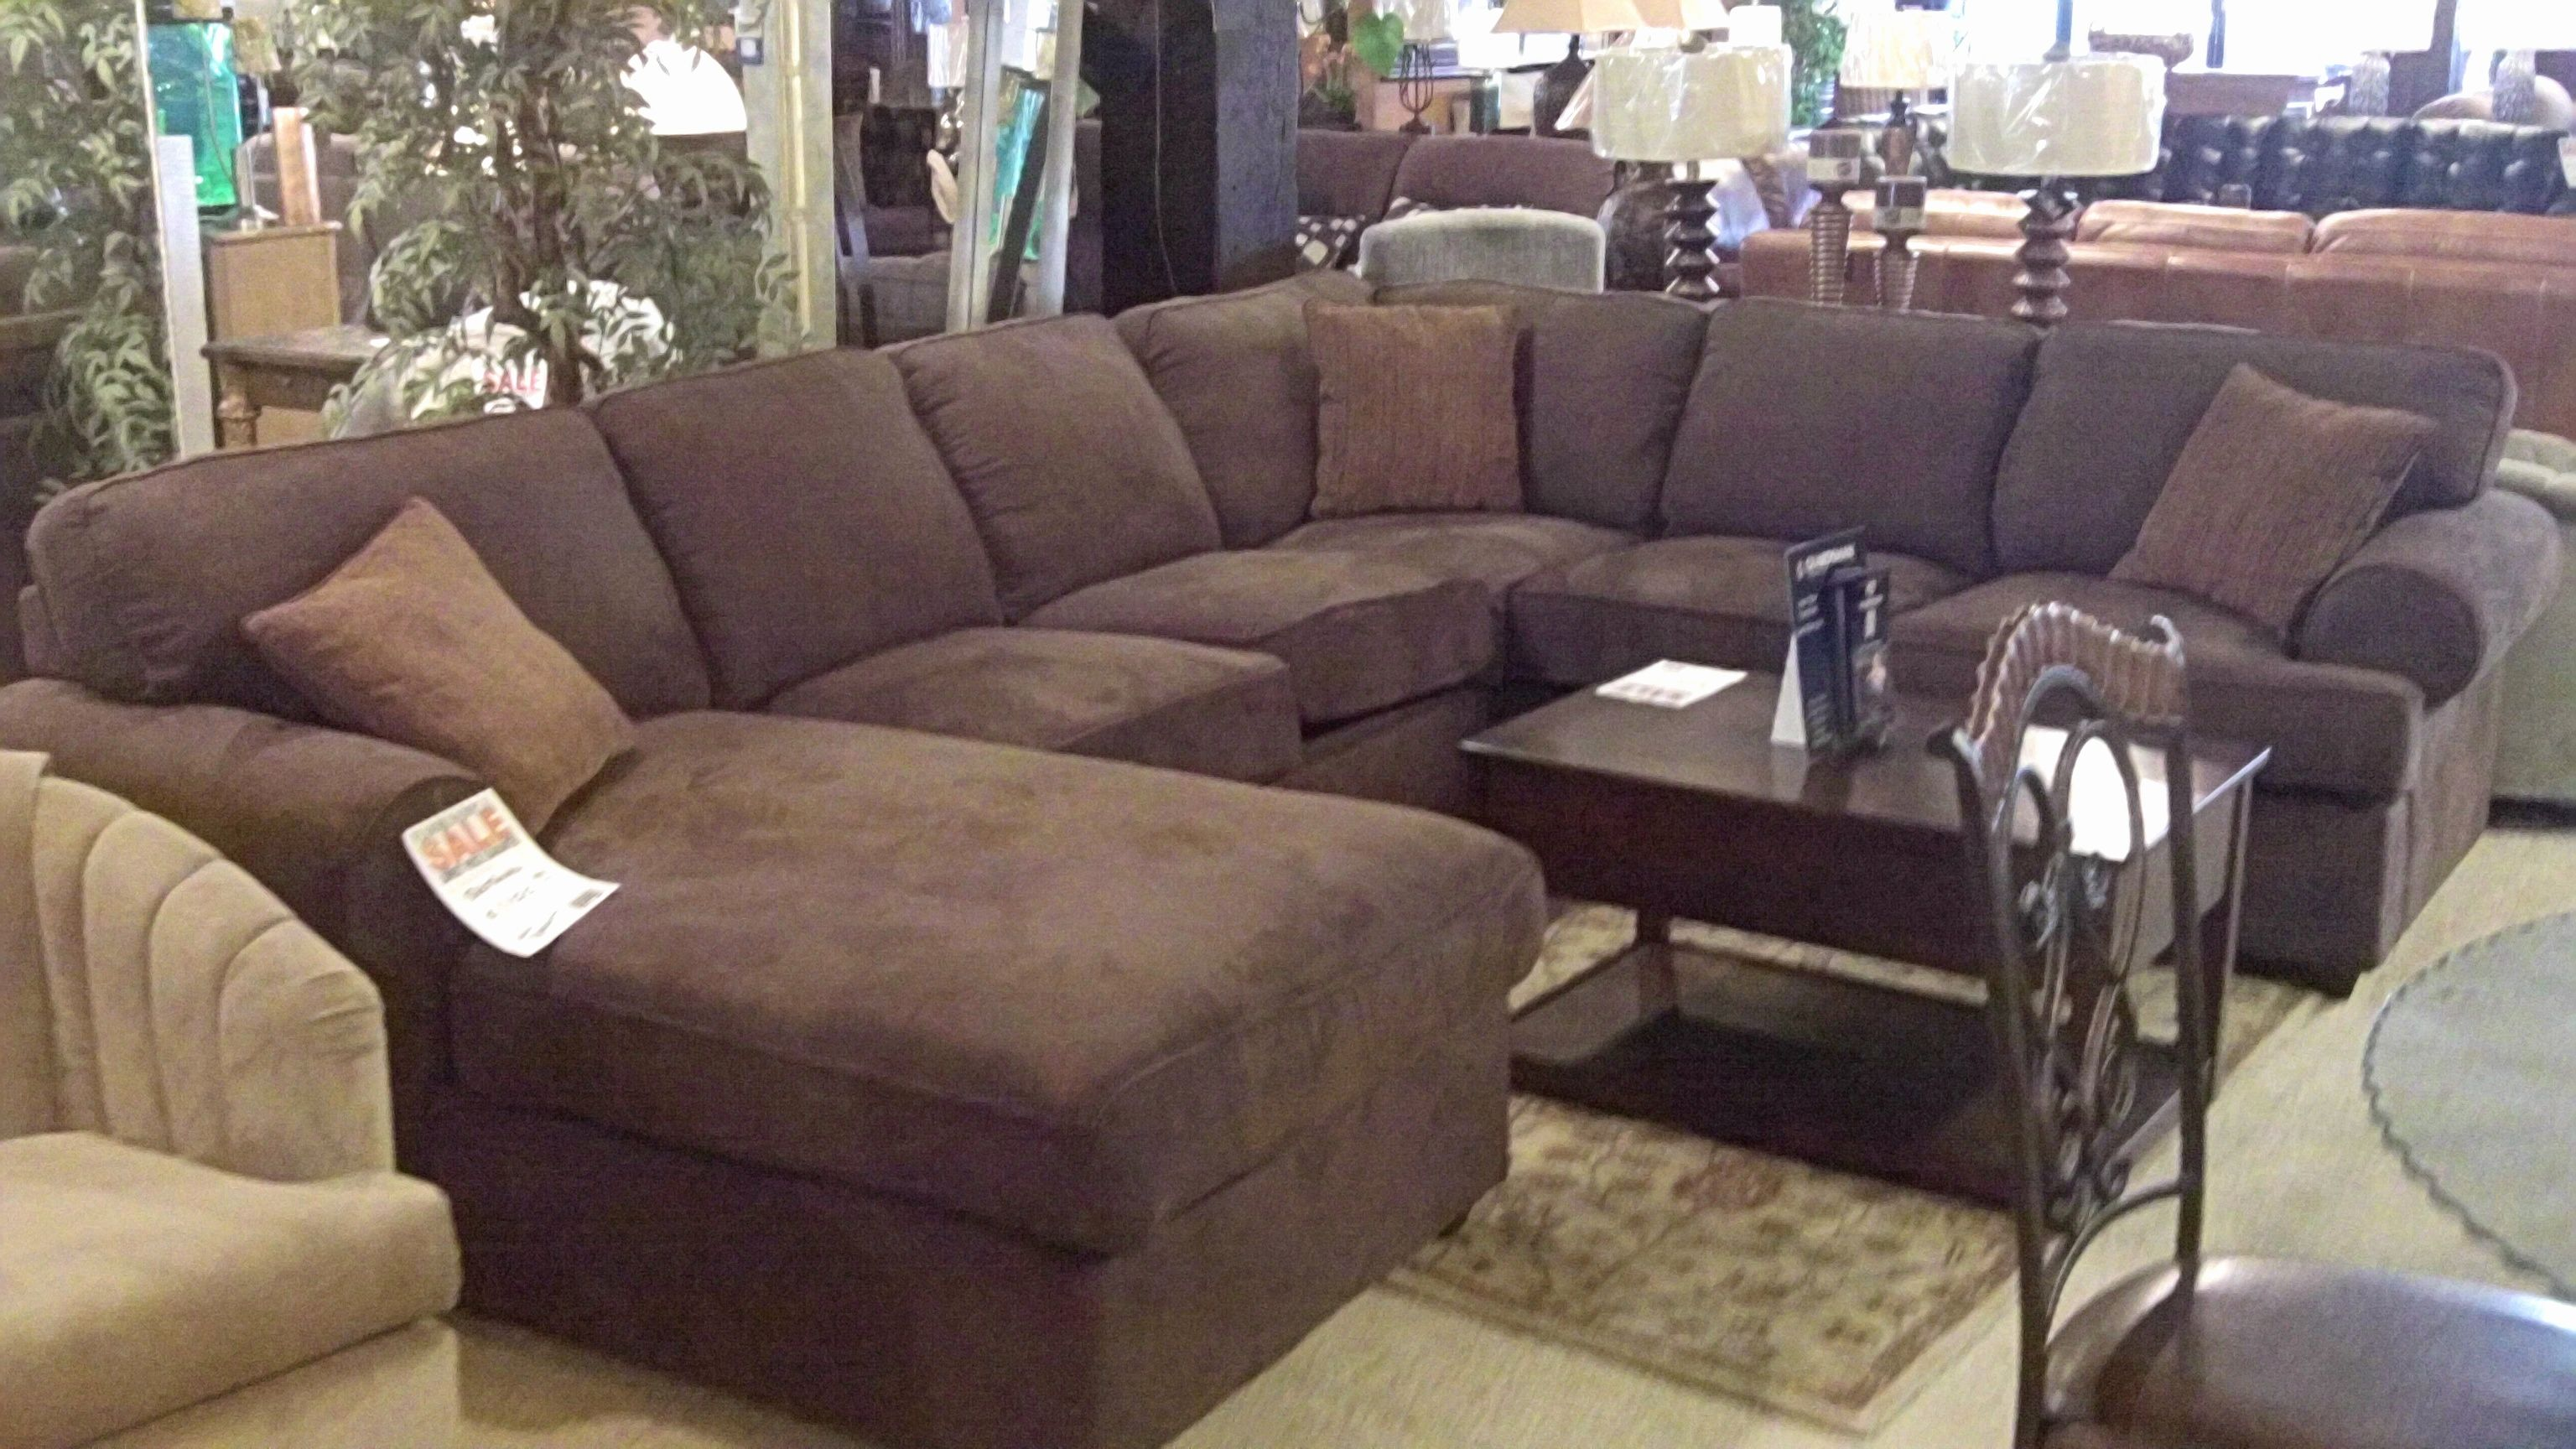 Leather Sectional Vancouver Luxury Small Leather Sectional Sofa Images Large Sectional Sofas